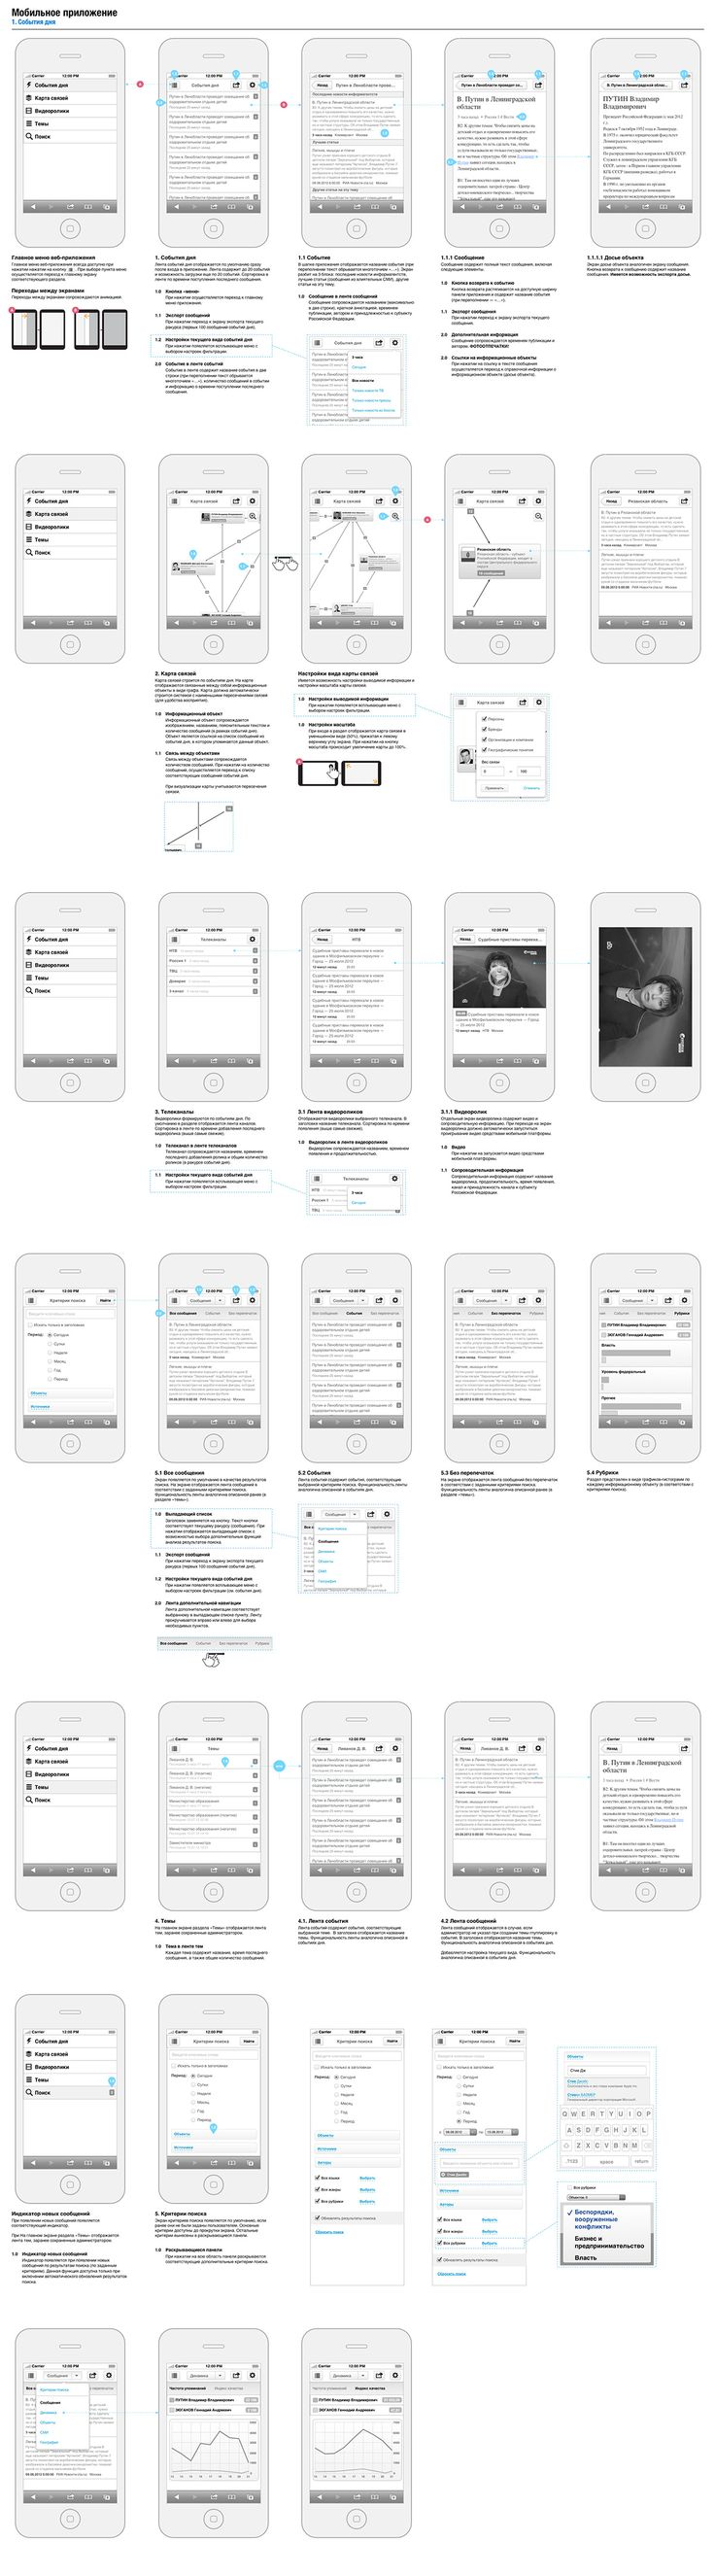 http://dribbble.s3.amazonaws.com/users/123819/screenshots/1000107/attachments/117781/drb-news-app-ux-lenta.jpg